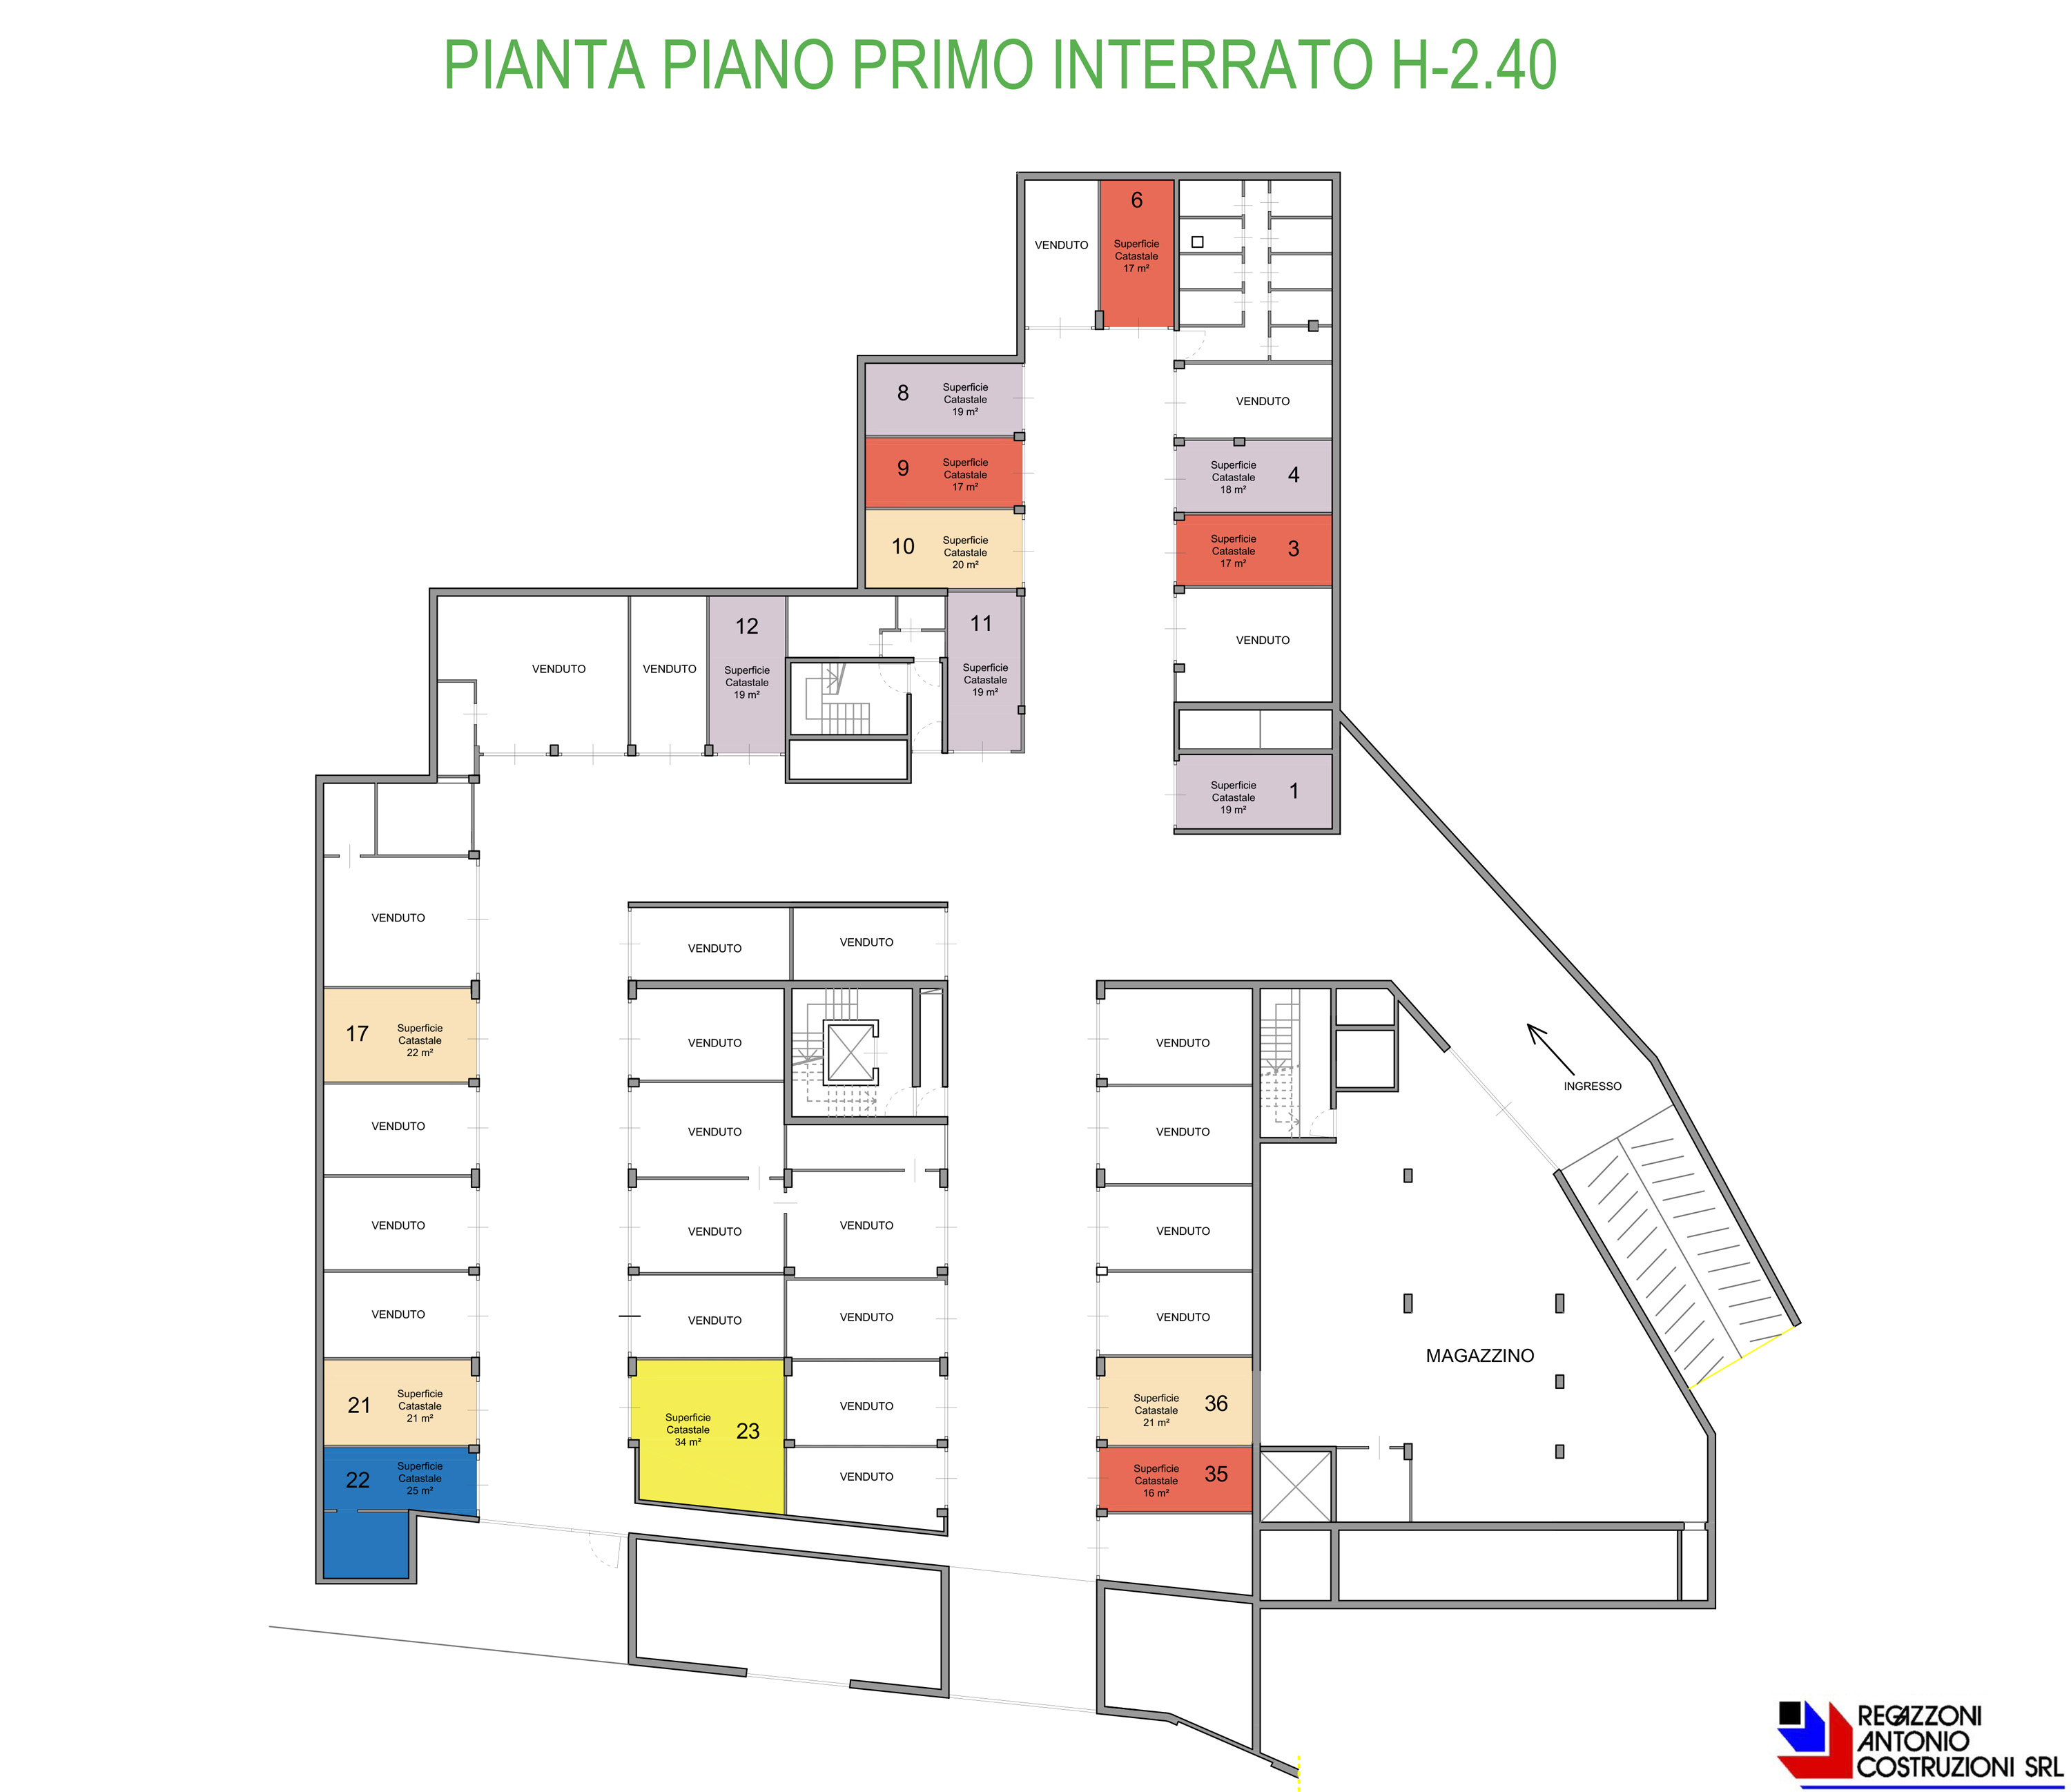 Pianta generale piano primo interrato - scala1a200